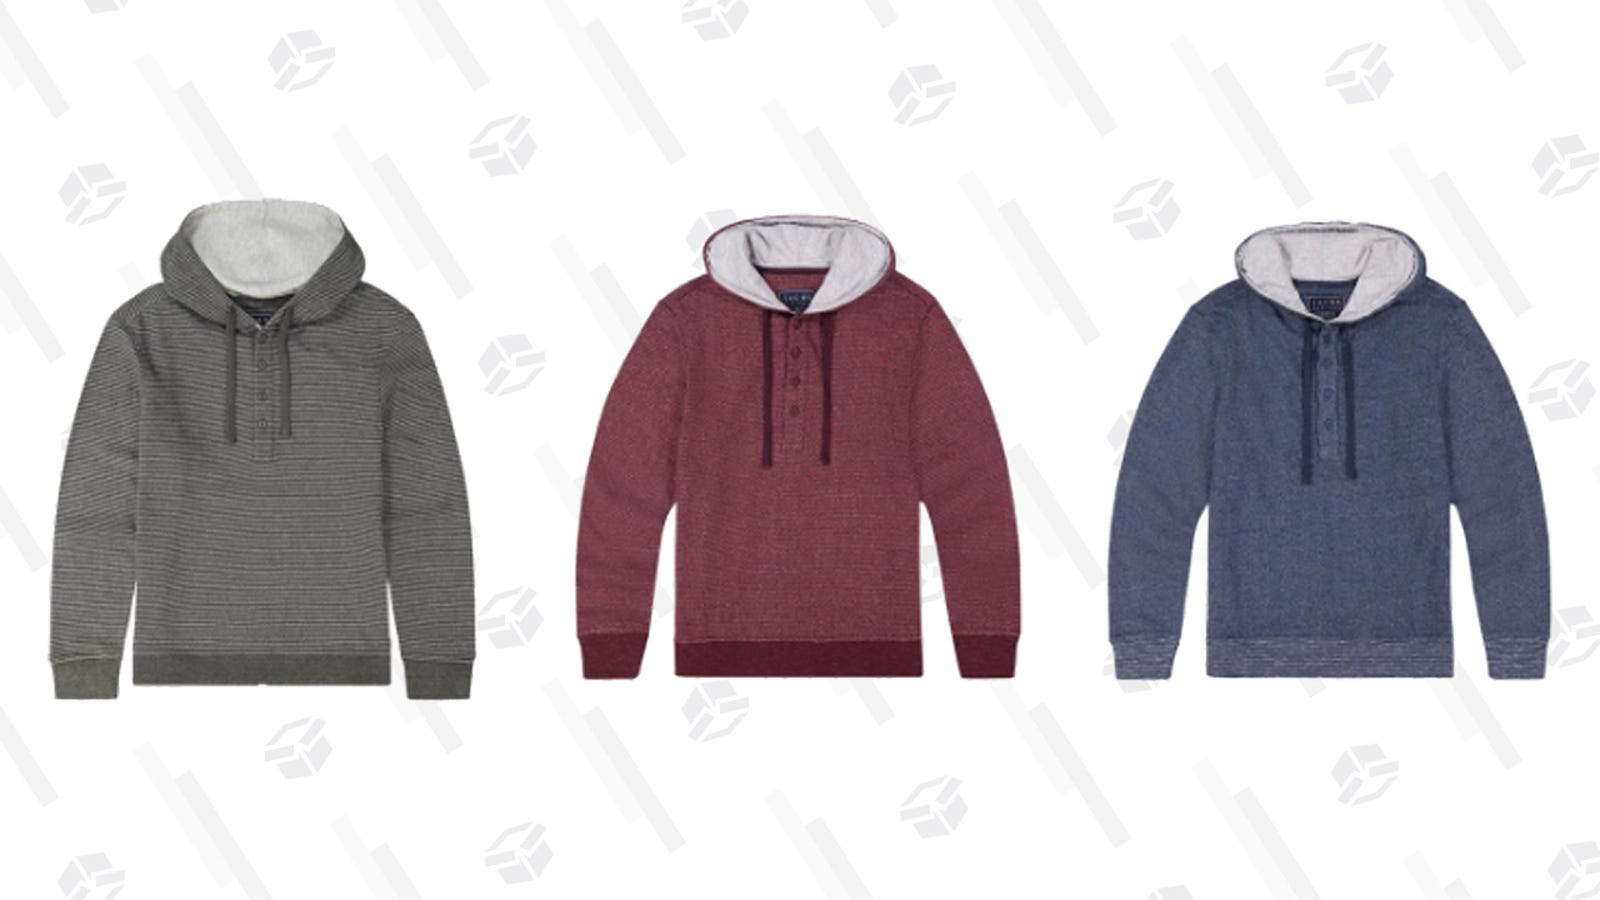 Prep For Fall Weather With Crewnecks and Hooded Henleys, Get 2 For $46 at Jachs thumbnail